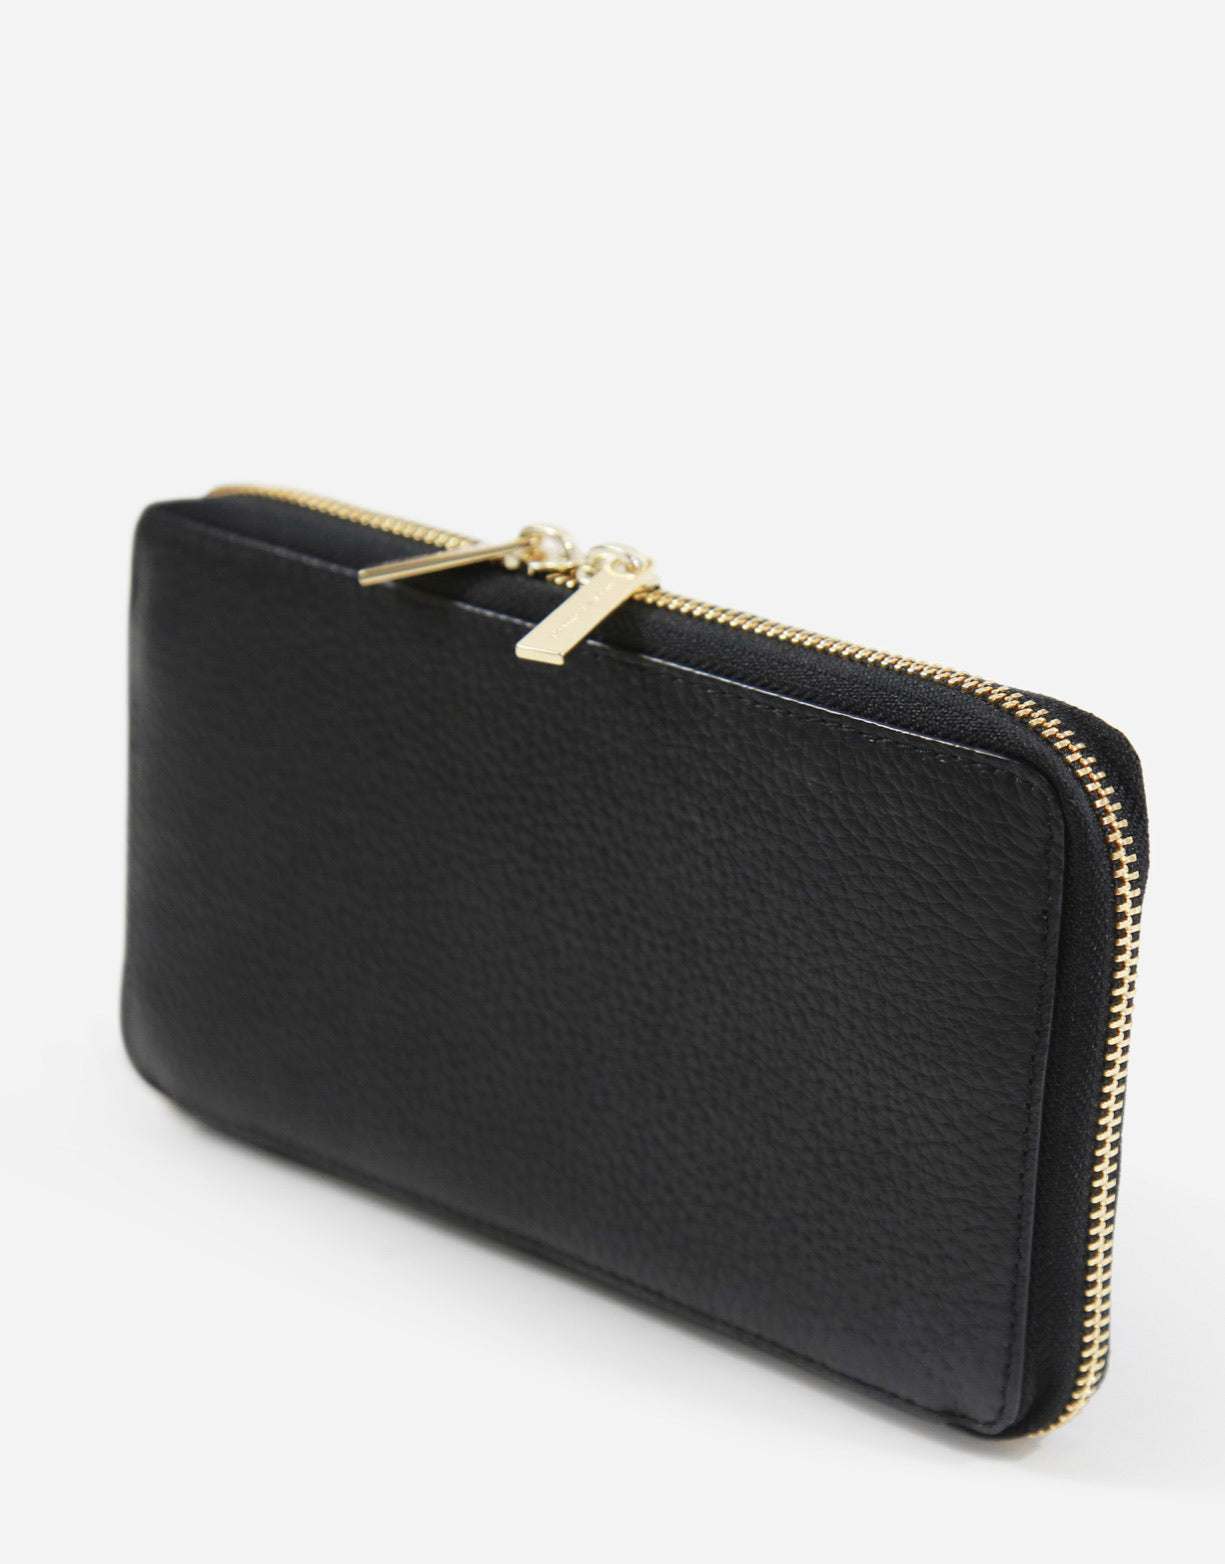 Neely & Chloe - No. 48 The Zip Wallet Pebble - Black